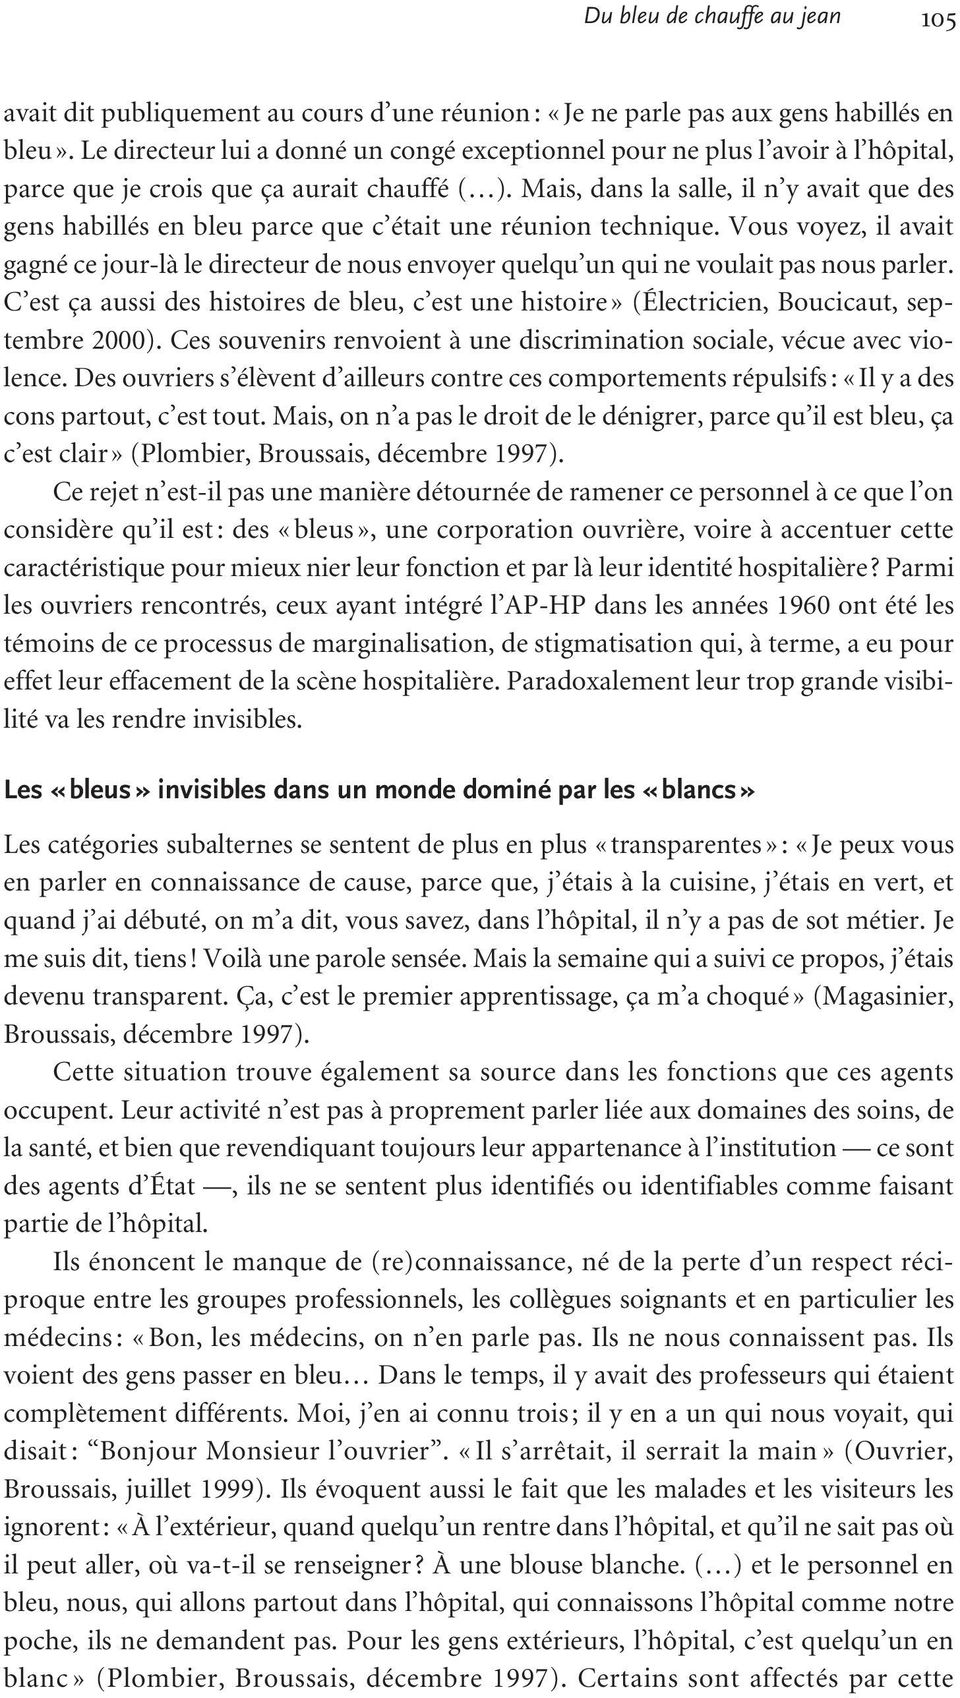 article anne monjaret sociologie et soci t s vol 43 n 1 2011 p pour citer cet article. Black Bedroom Furniture Sets. Home Design Ideas